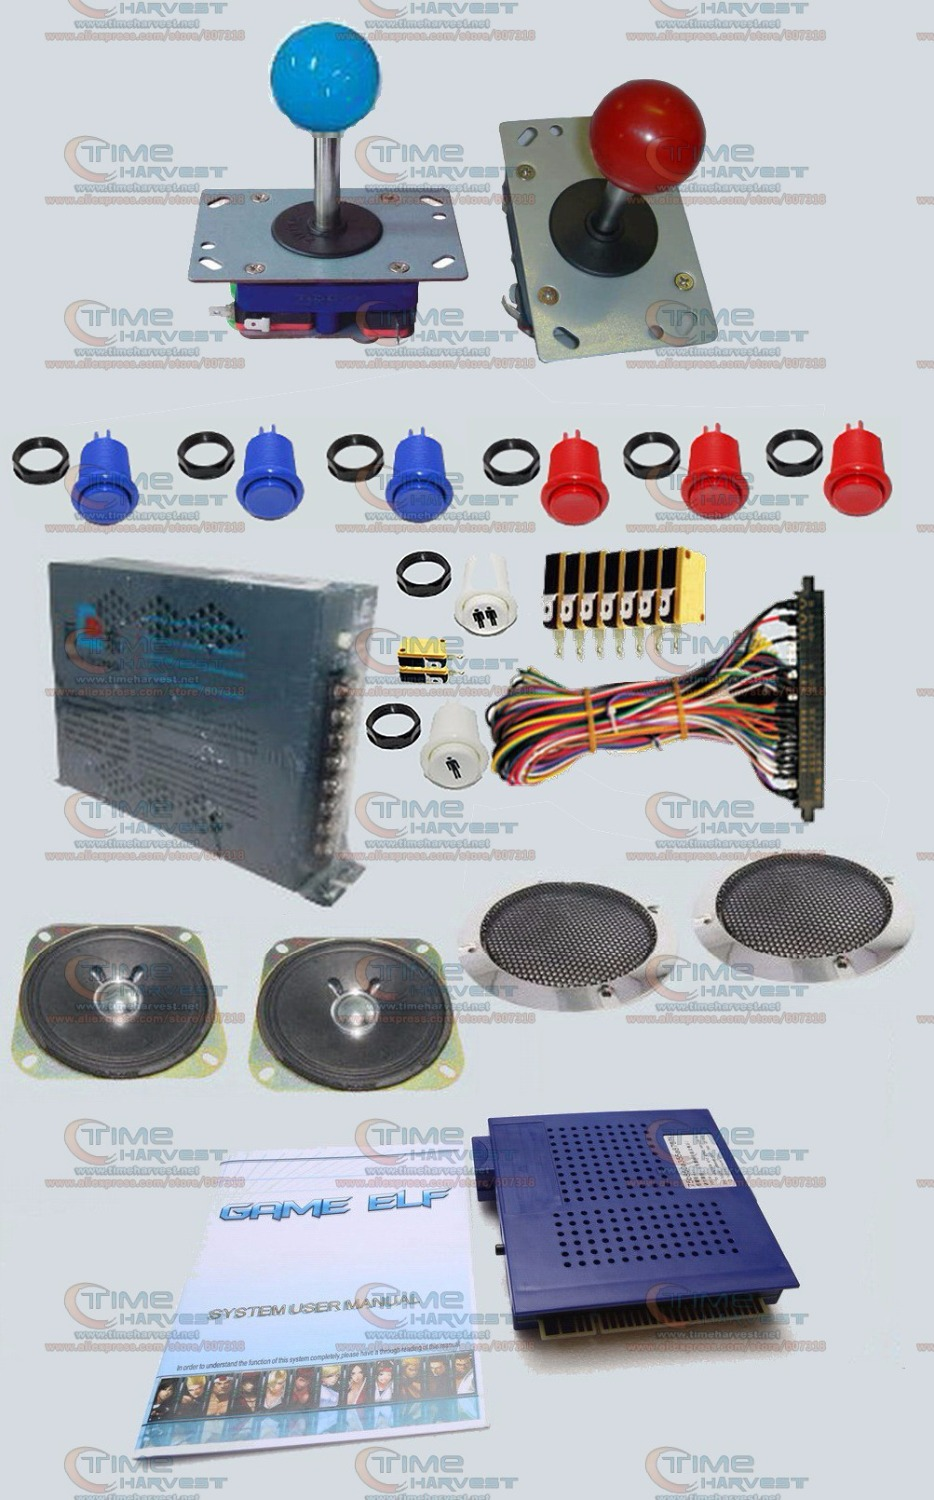 Arcade parts Bundles kit With Game elf 412 in 1 Long shaft Joystick american style button Jamma Harness 16A power supply speaker arcade jamma mame diy parts kit 2 american style joysticks